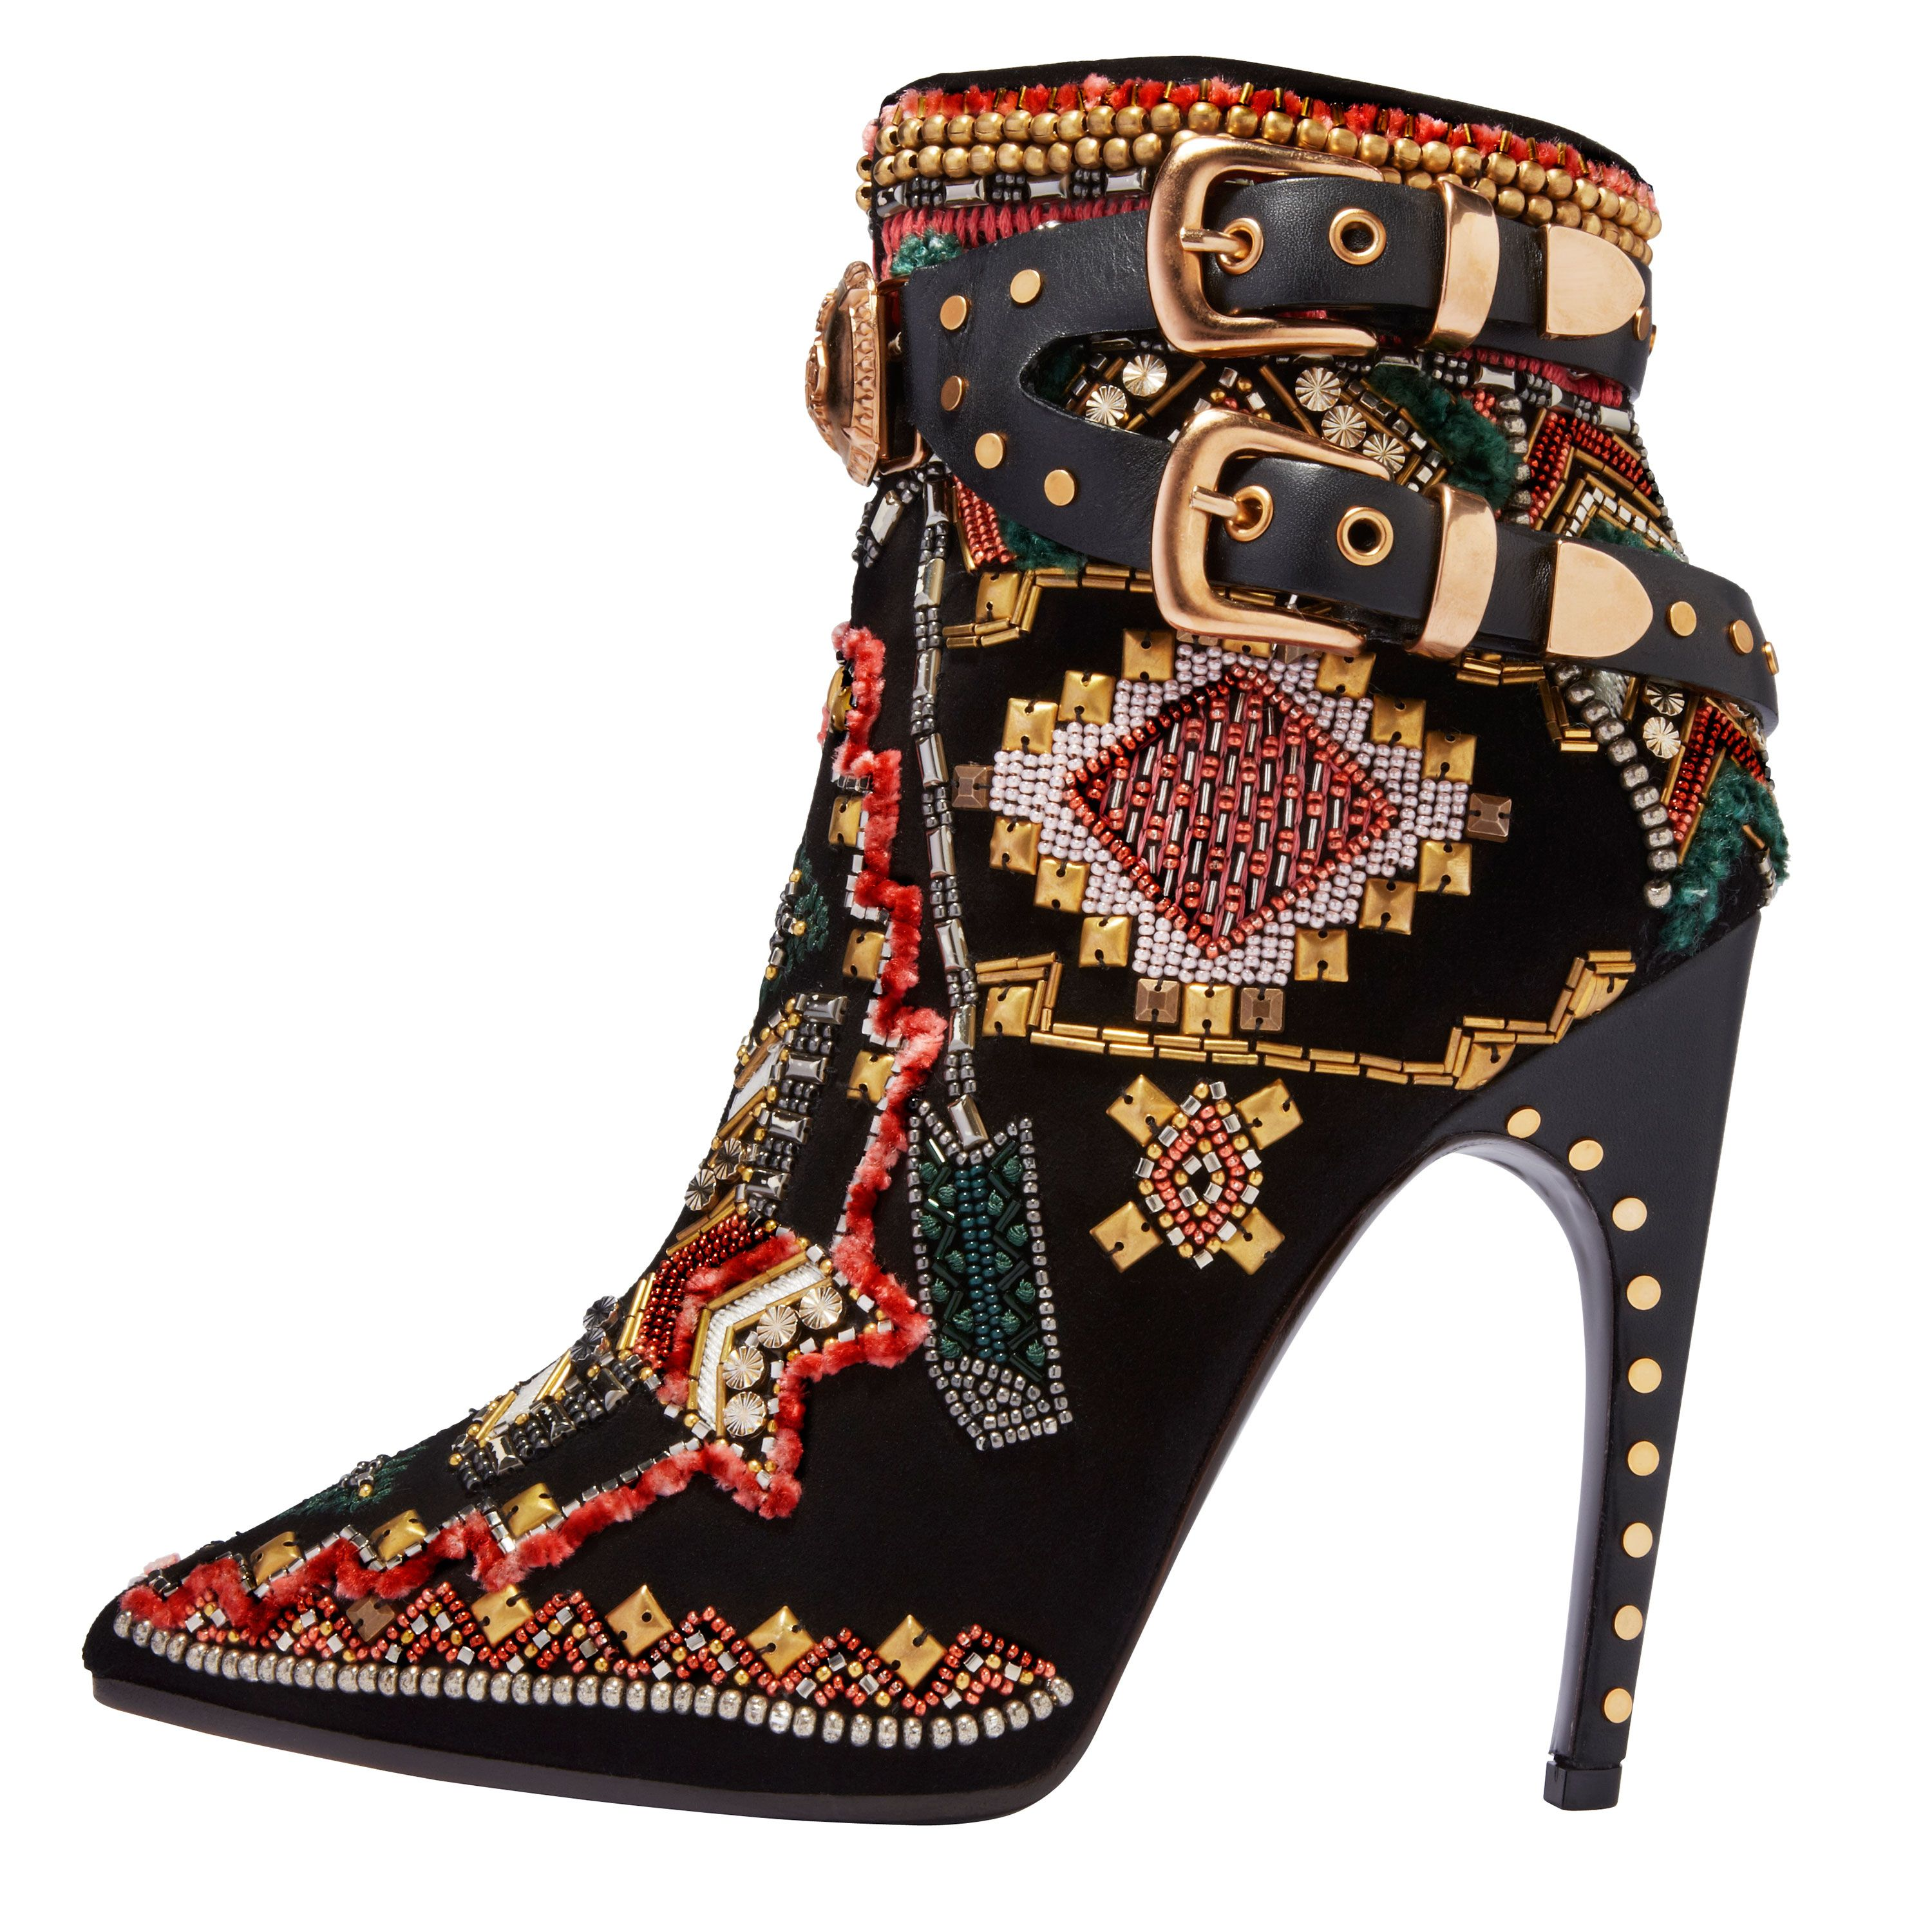 Bohemian Chic - Embroidered Booties Harpers